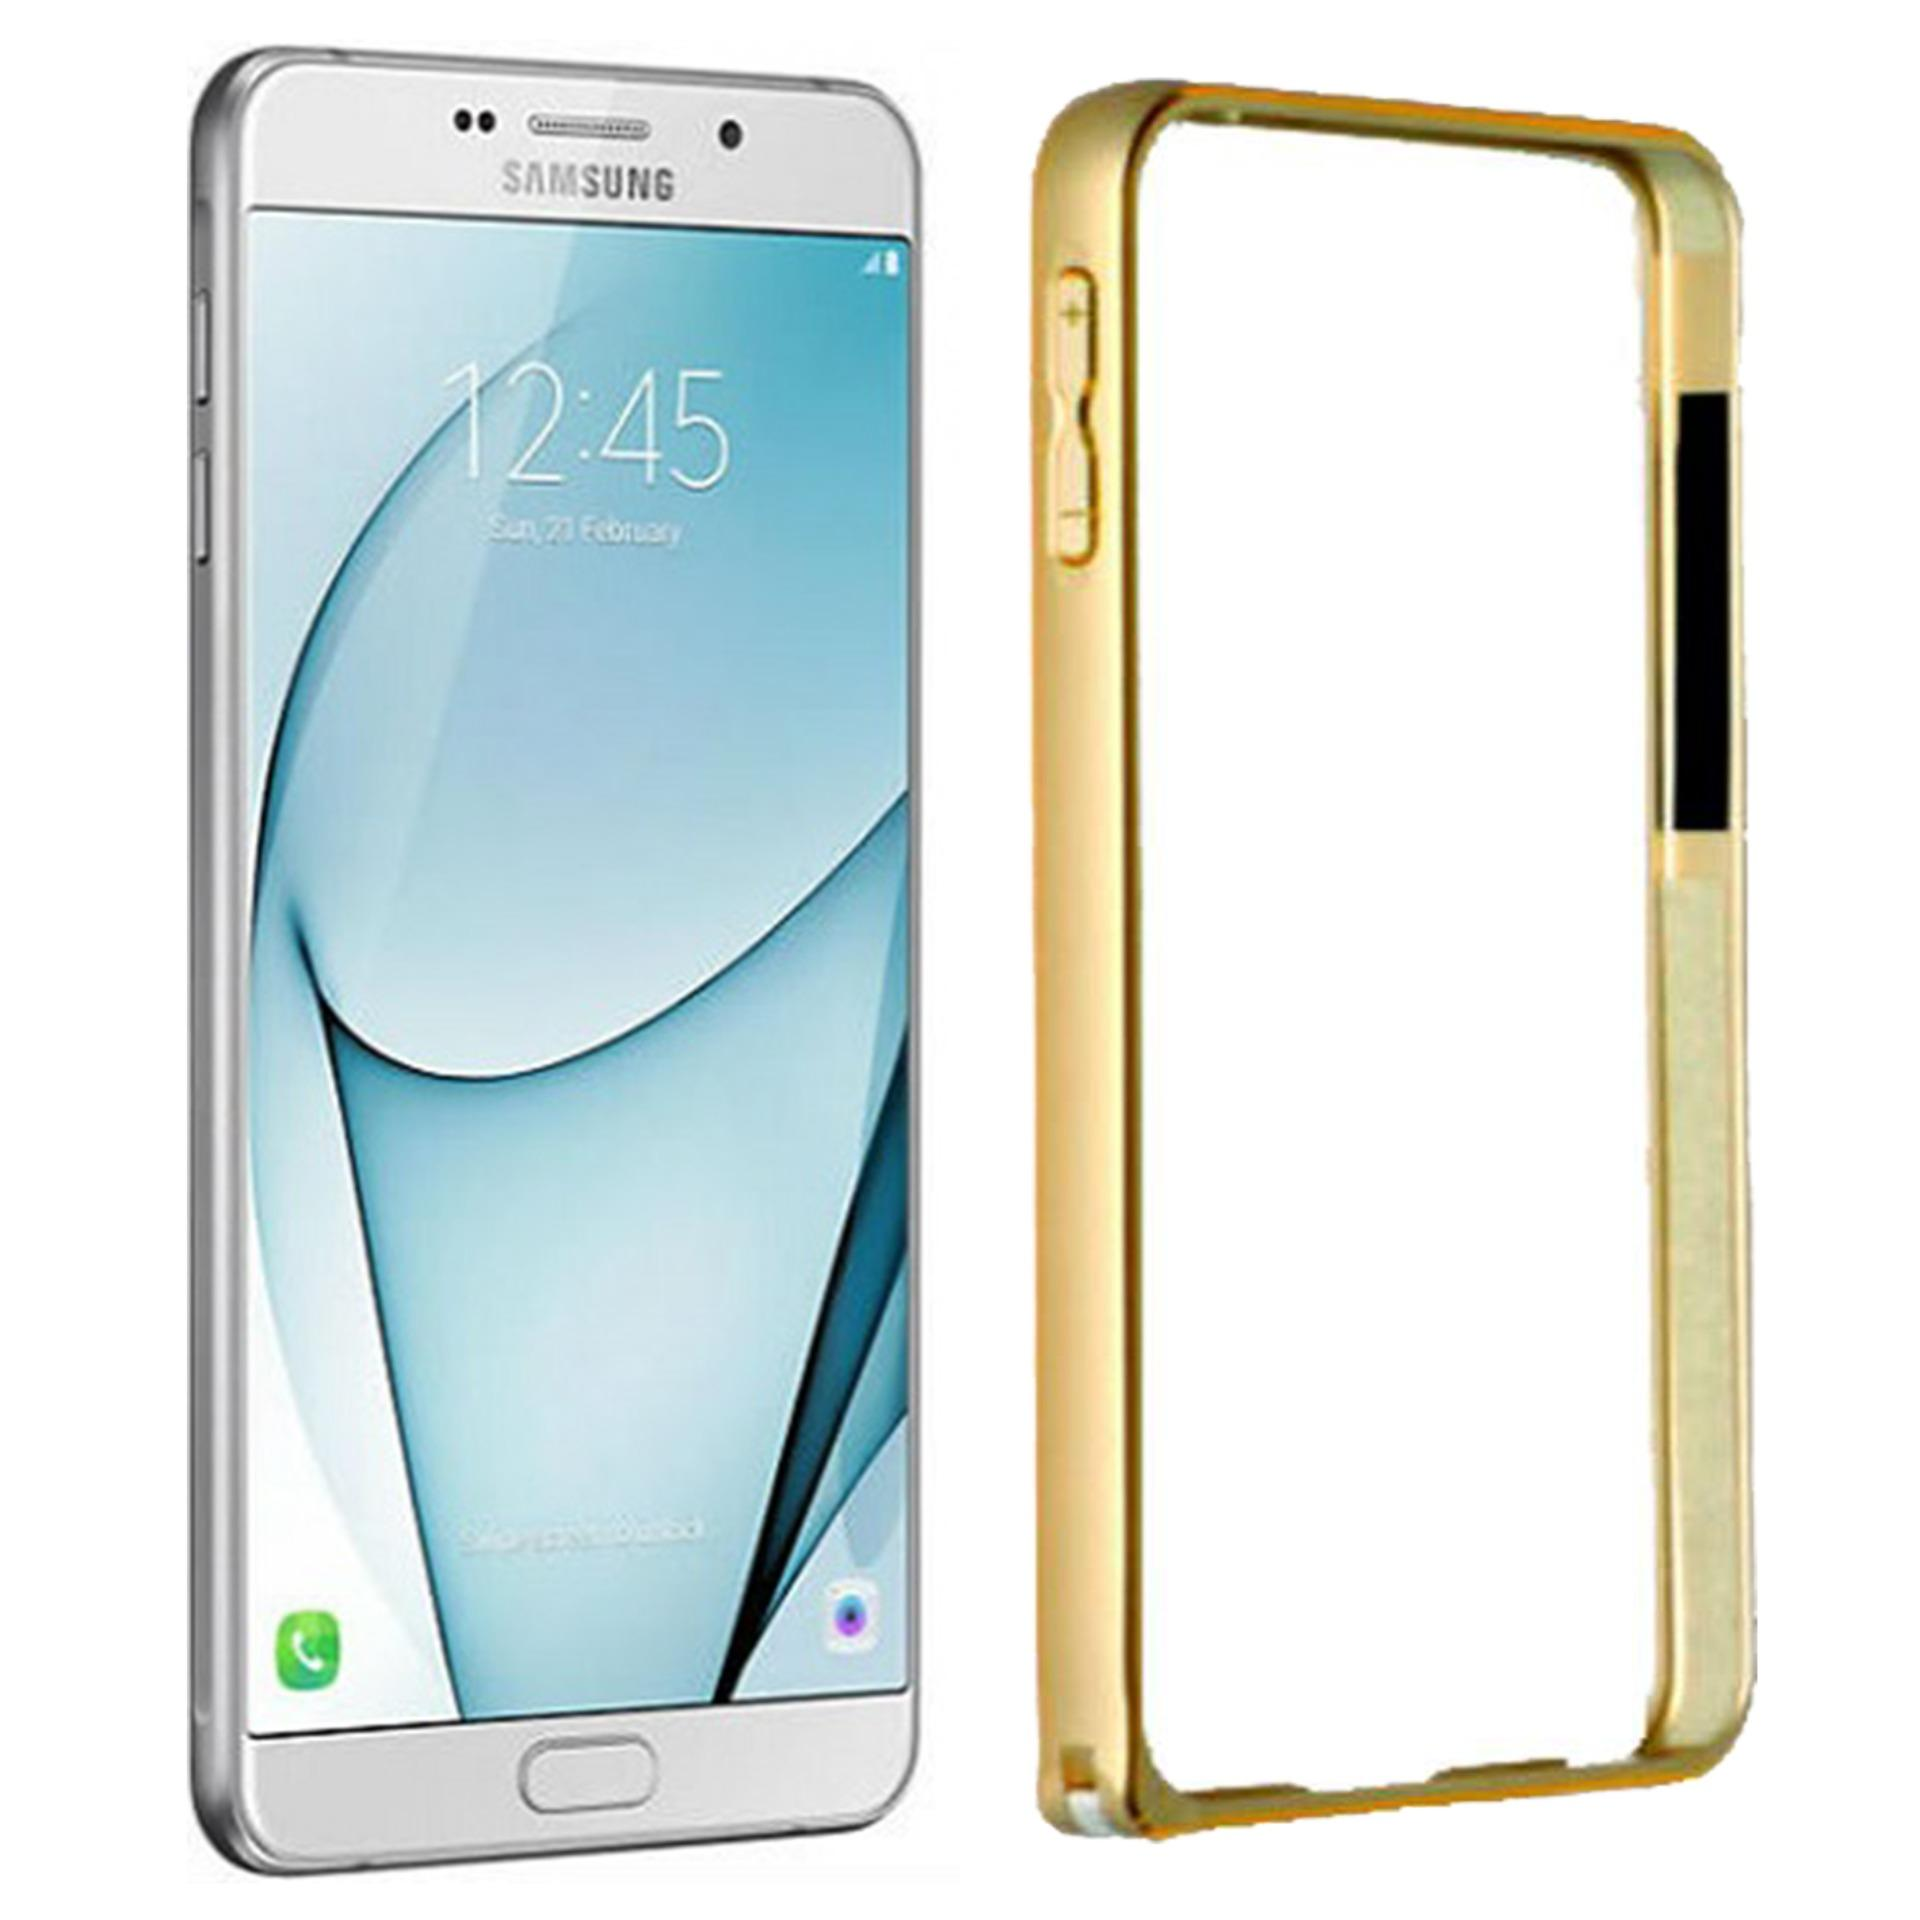 Aluminium Bumper Stainless Metal Bezel List for Samsung Galaxy A9 / Pro / 4G LTE Duos - Gold